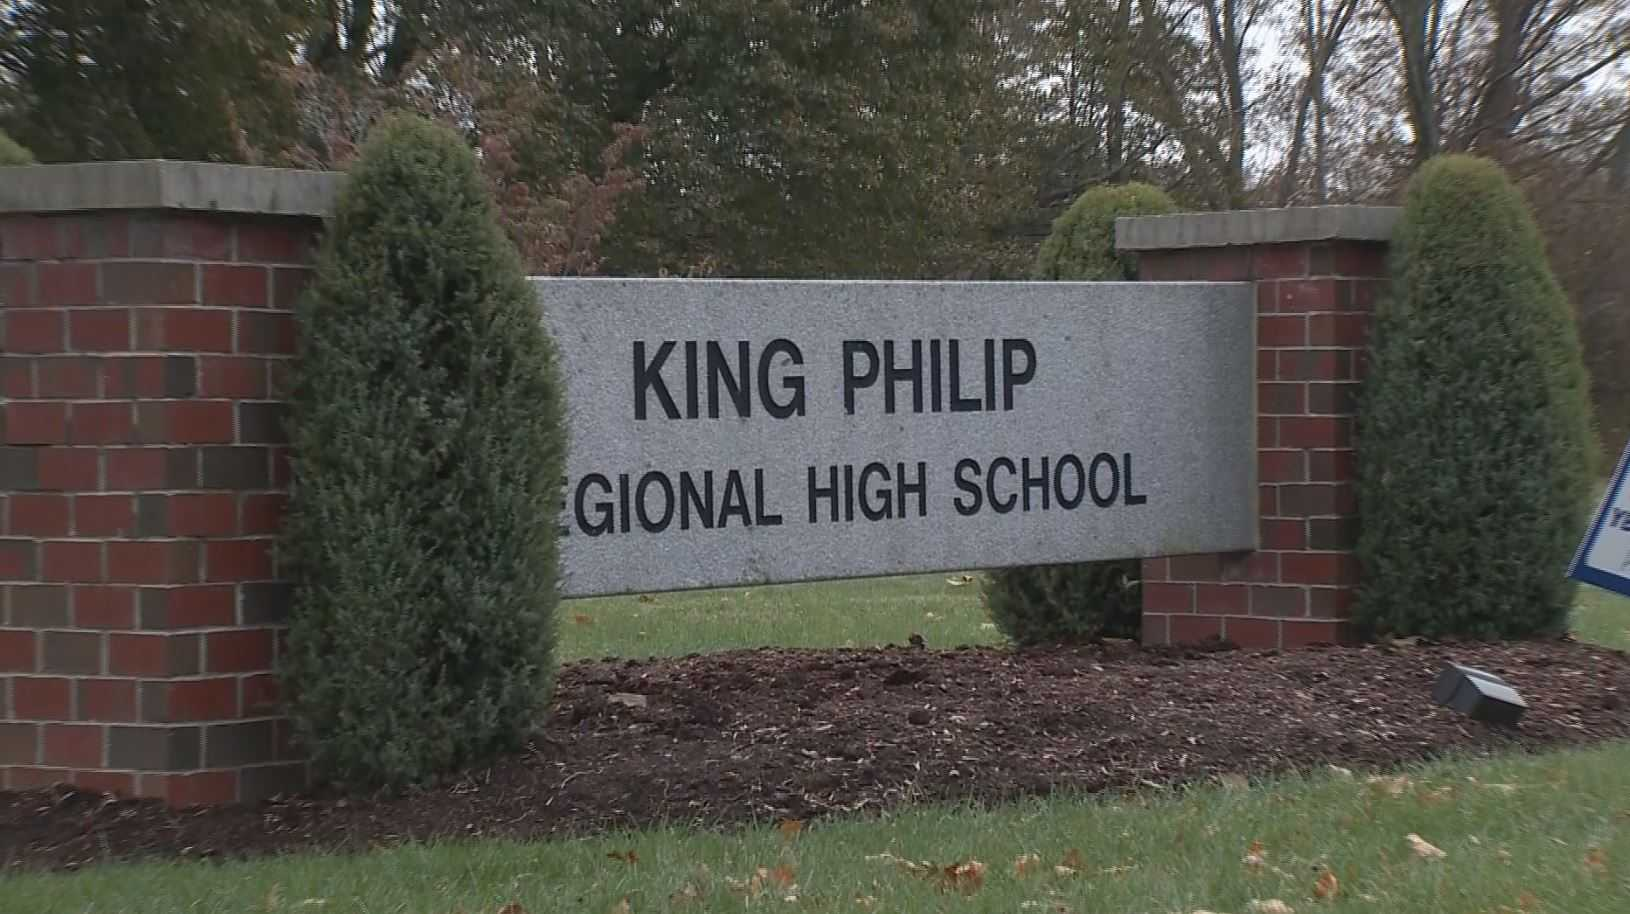 School: Racial slurs, sexual comments made towards student, mother